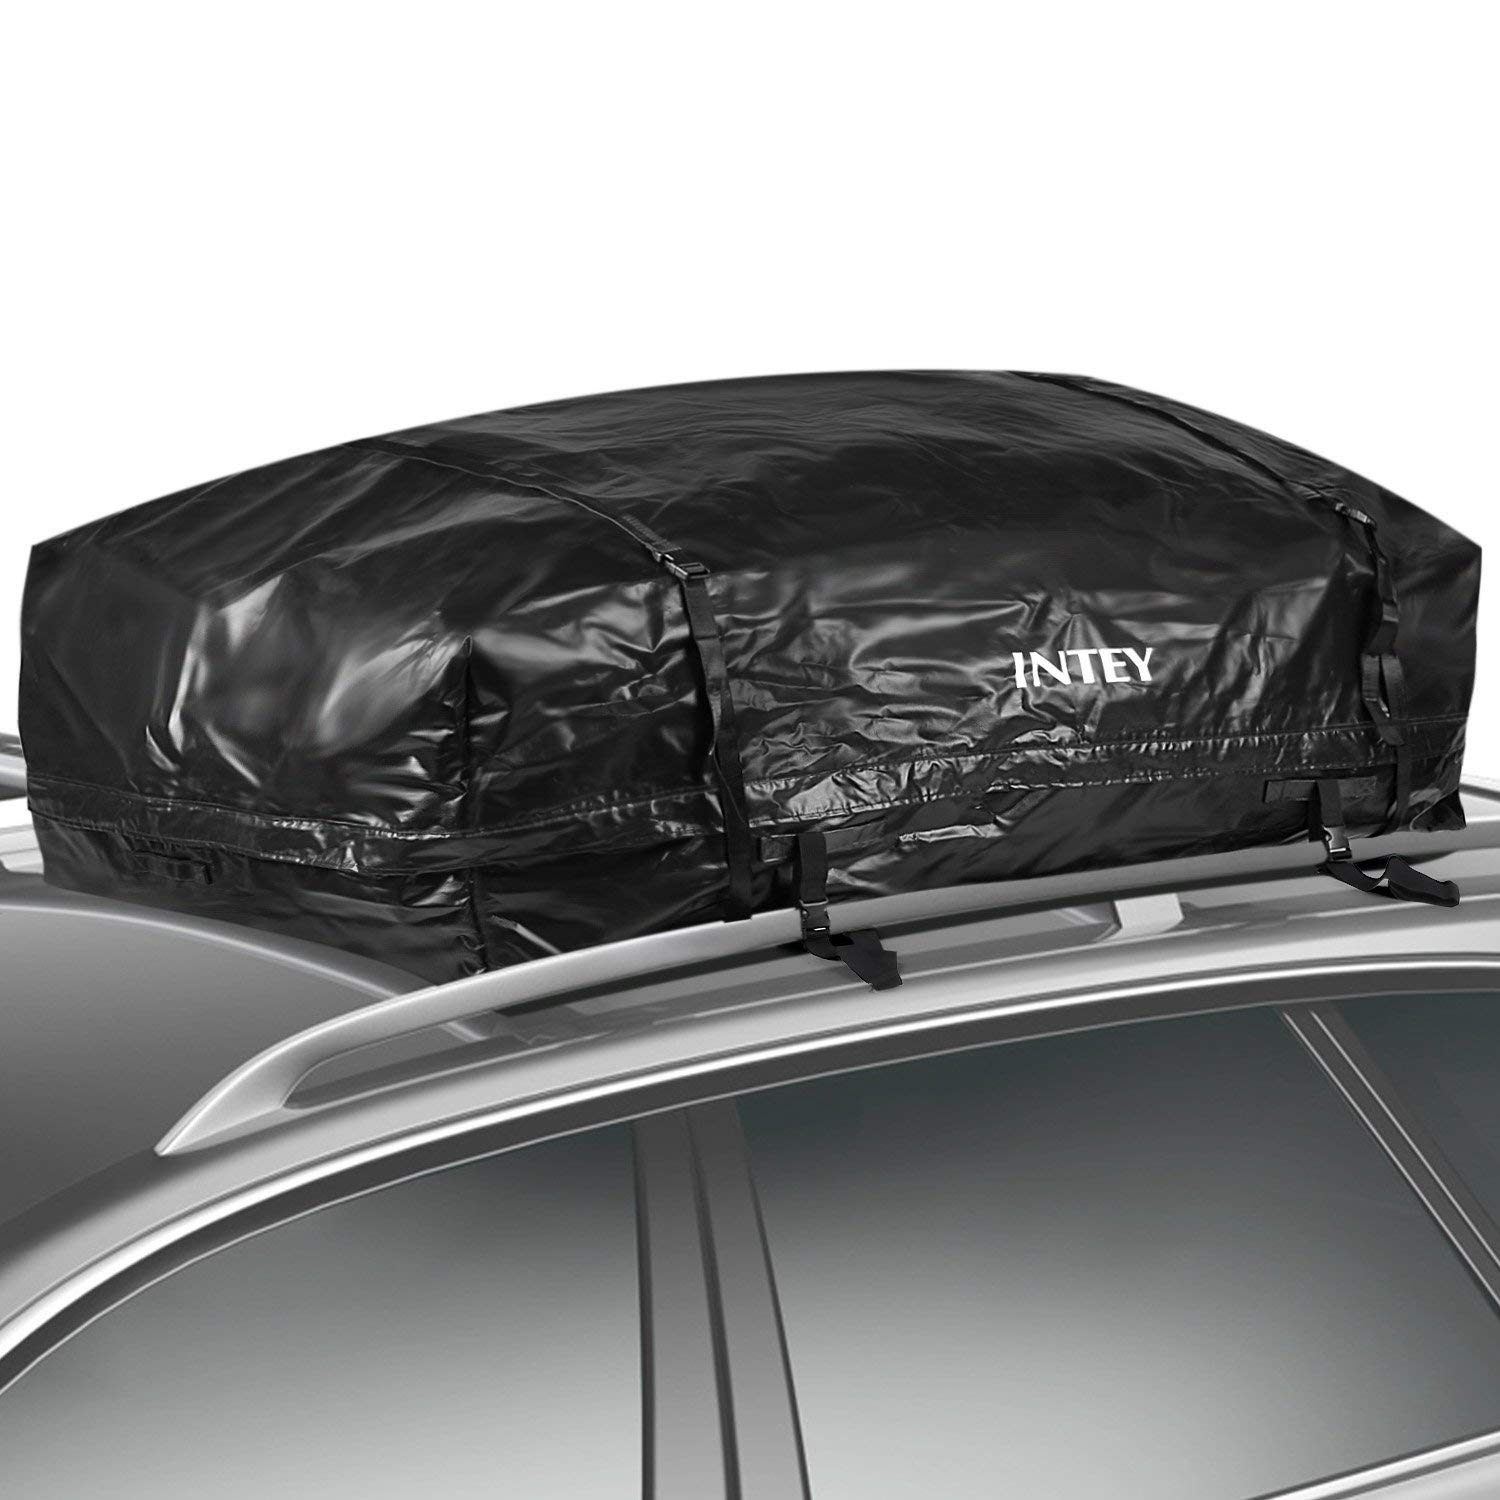 INTEY Cargo Bag Rooftop Cargo Carrier Waterproof Car Roof Storage 15 Cubic Feet for Car, Van and SUV